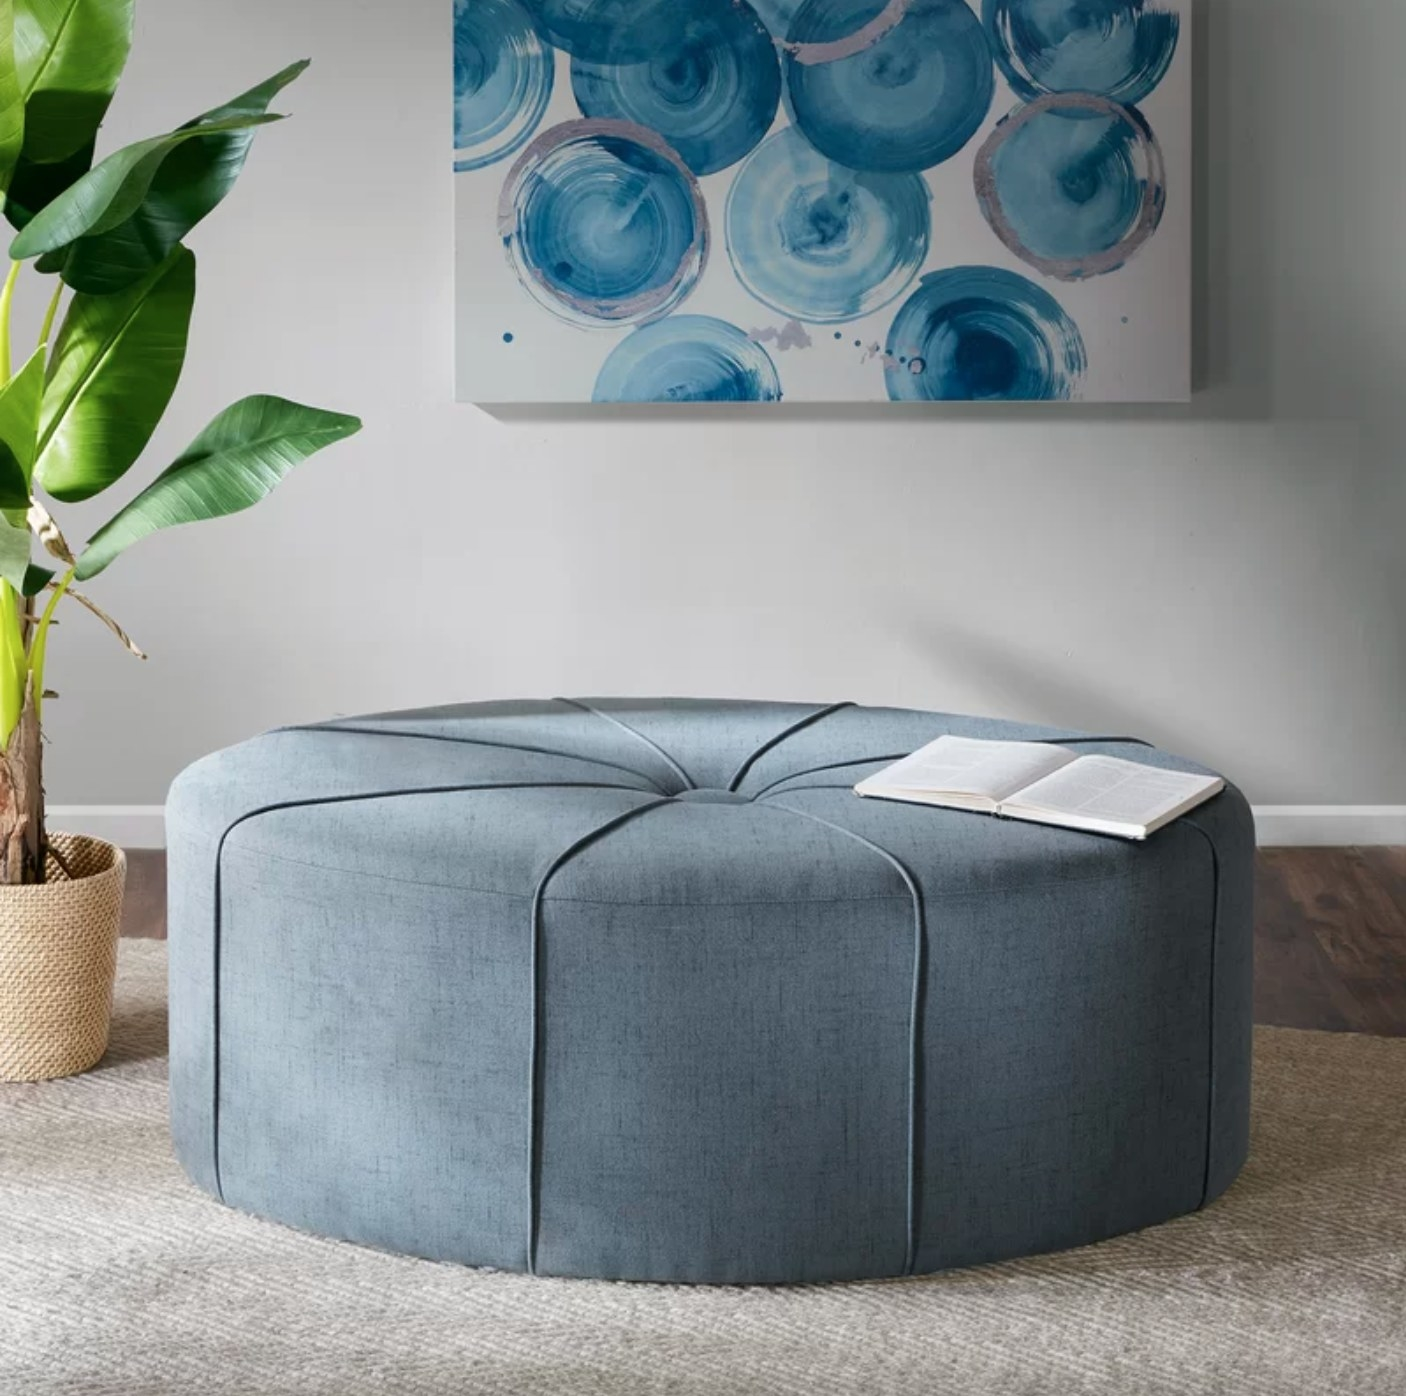 The large oval ottoman in blue polyester blend